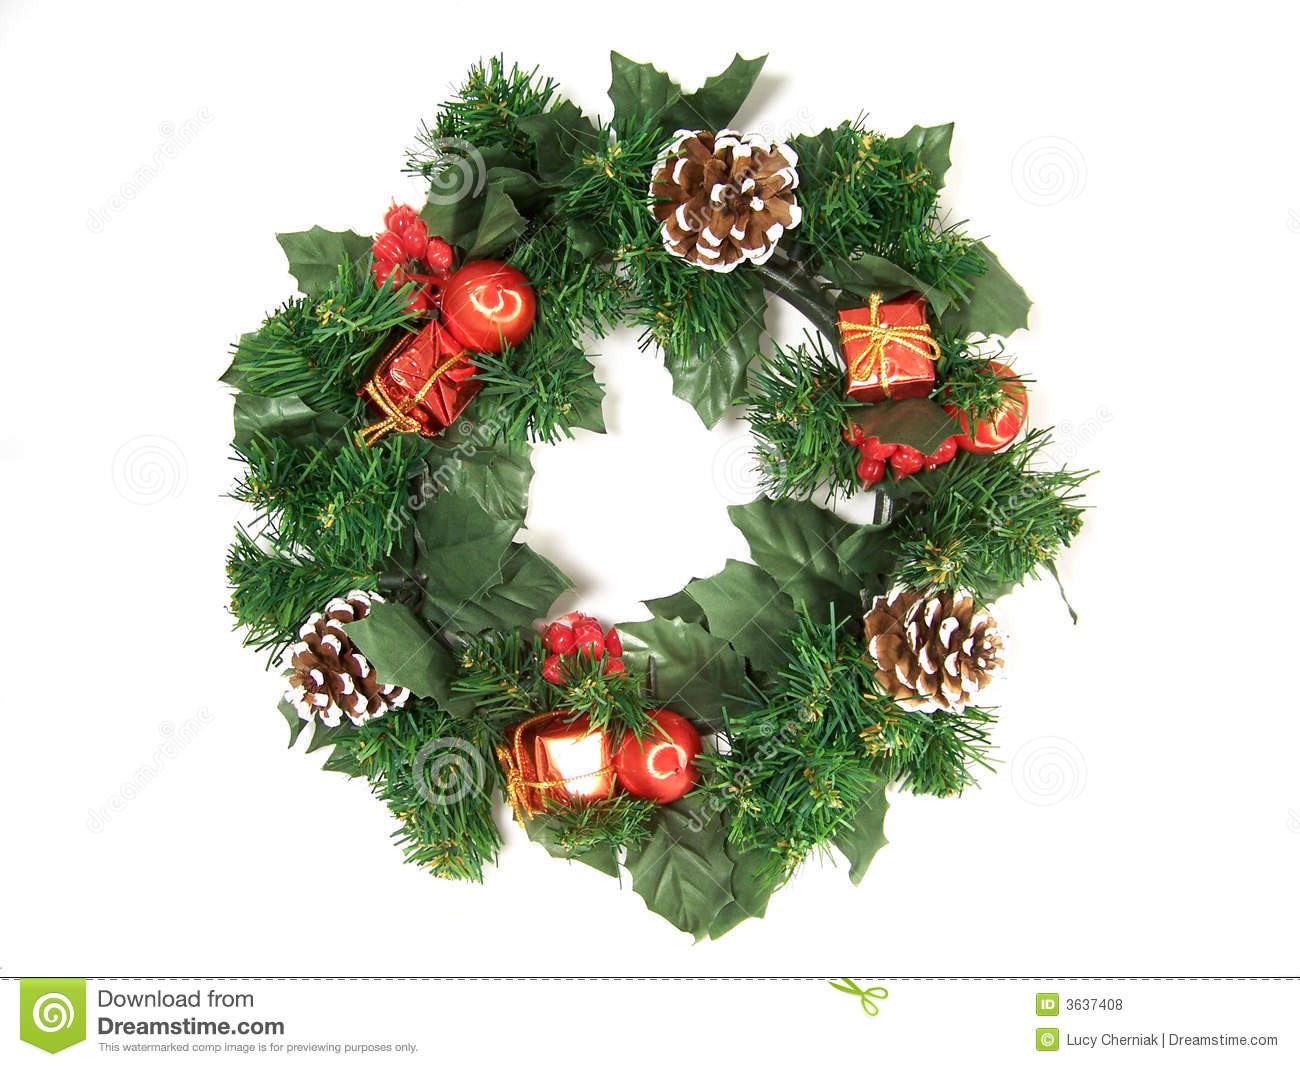 download christmas decorations garland stock photo image of blocks celebration 3637408